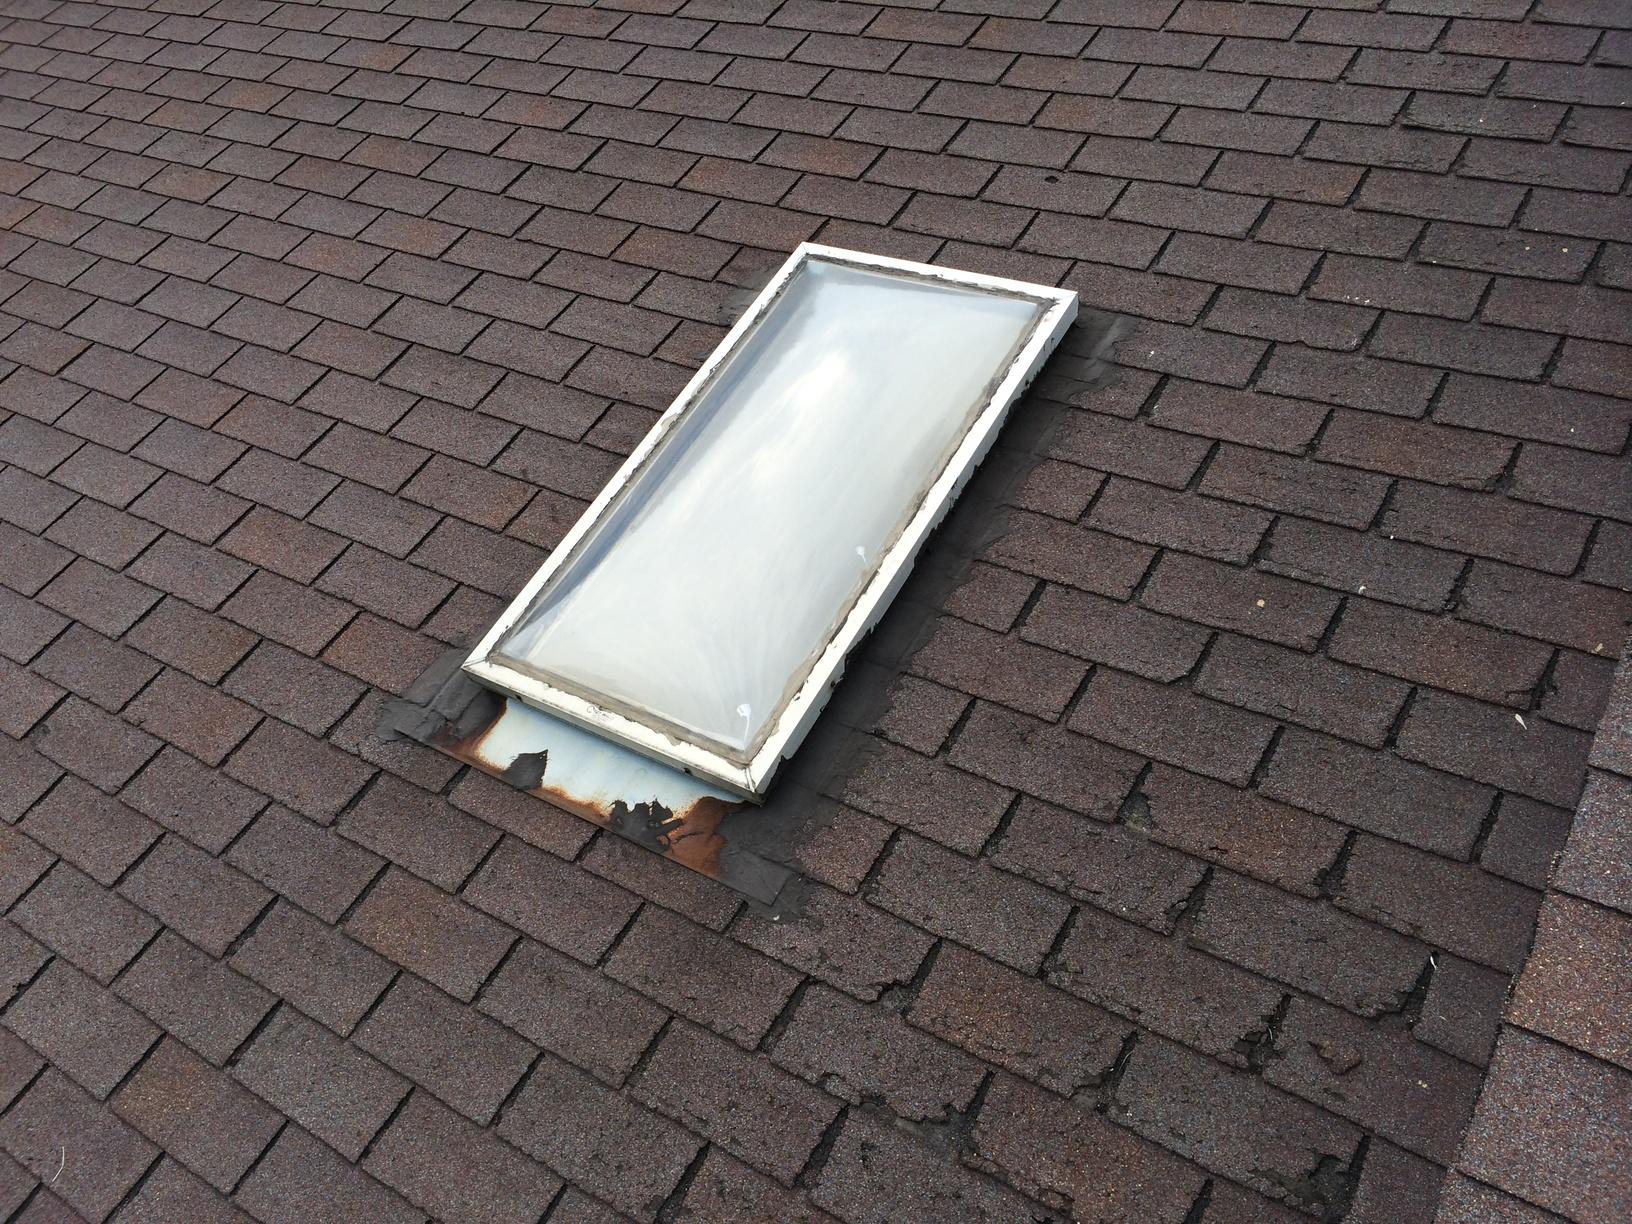 One of the skylights before replacement.